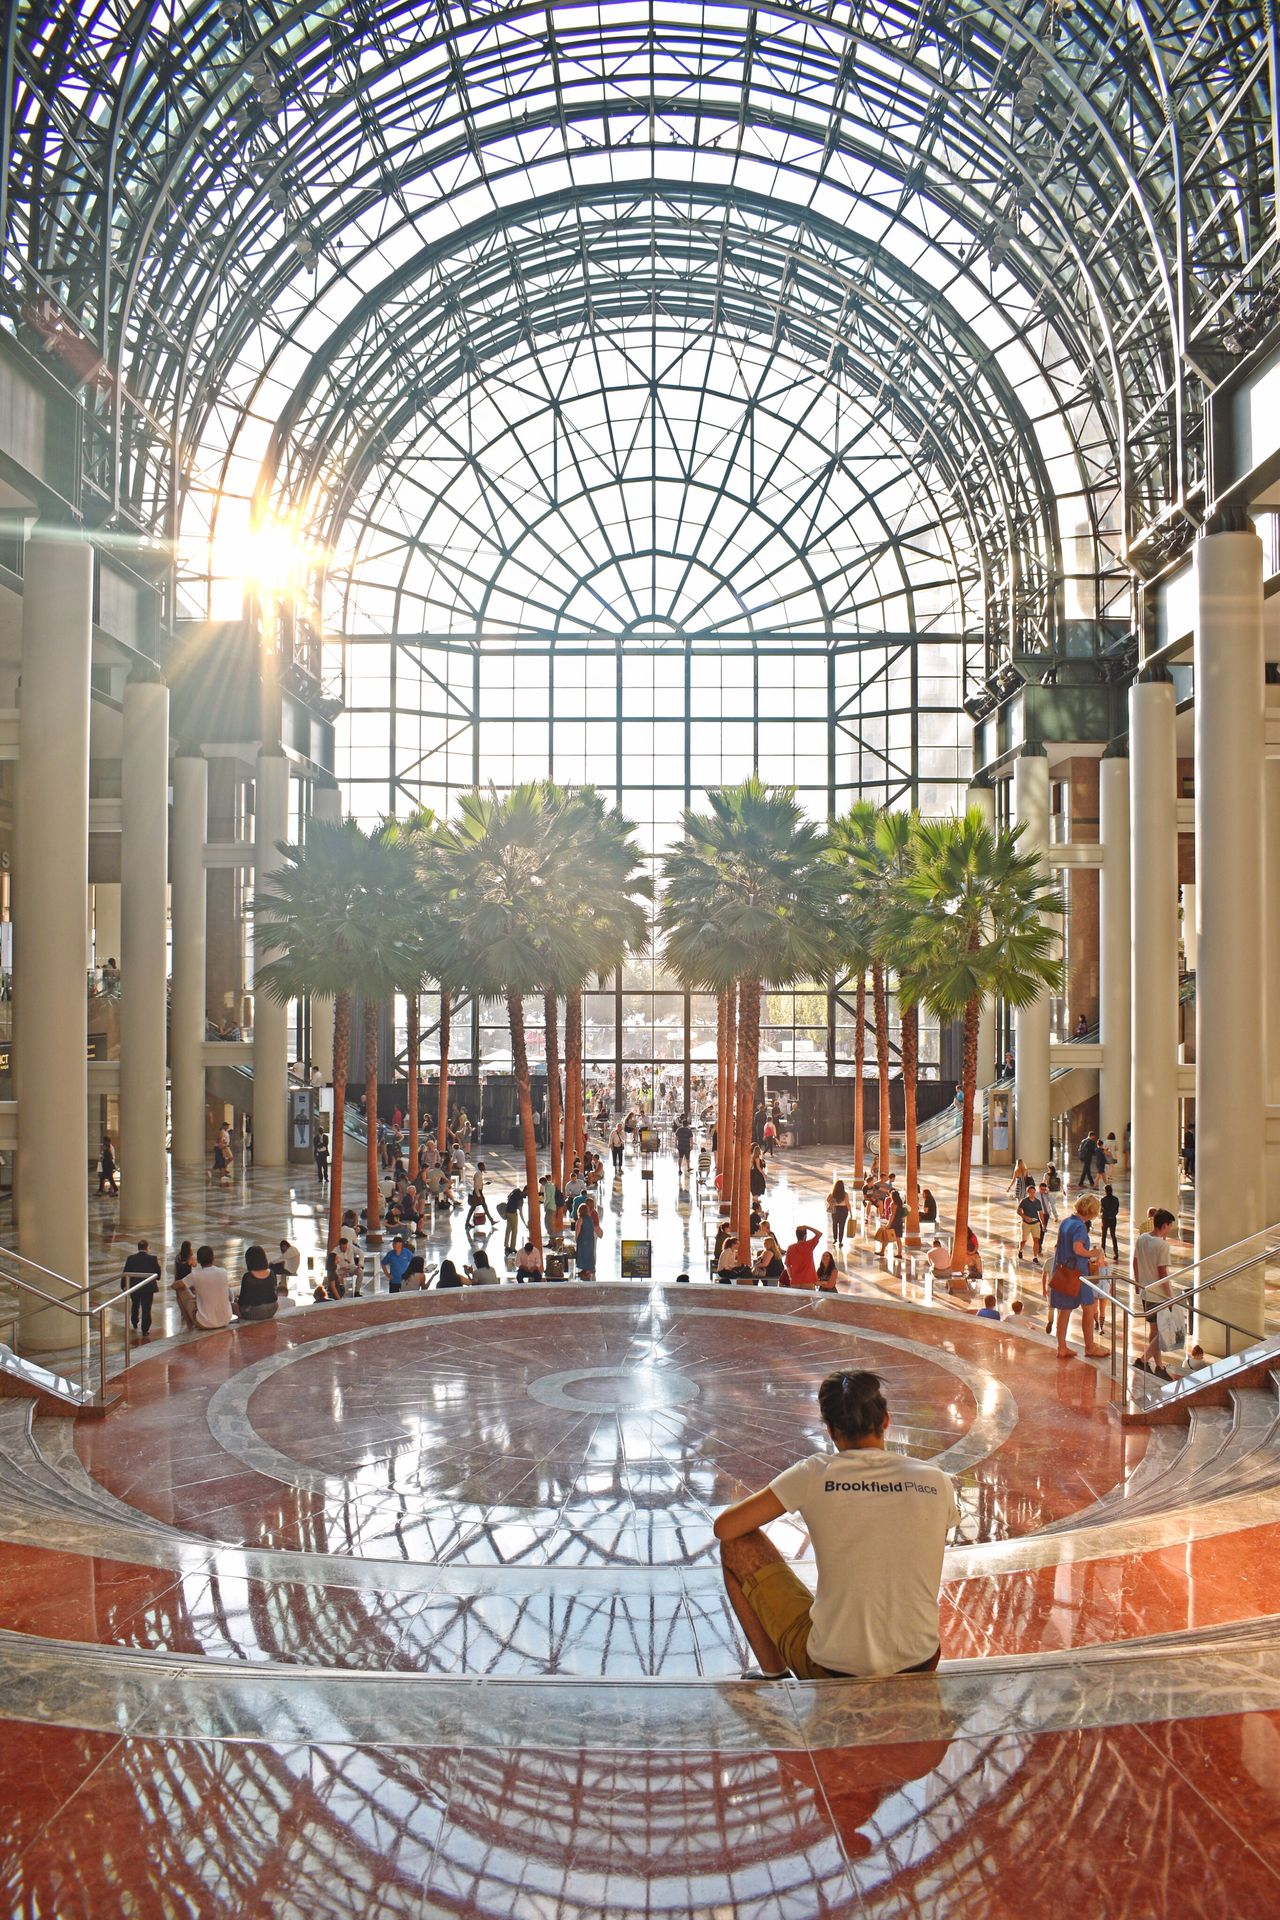 Real People People City Life Brookfield Place Mall Battery Park Architecture Travel Destinations Built Structure Sitting Arch Tourism Large Group Of People Day Women Lifestyles Adults Only Vacations Adult Indoors  Men Water Relaxing Enjoying The View Enjoying Life